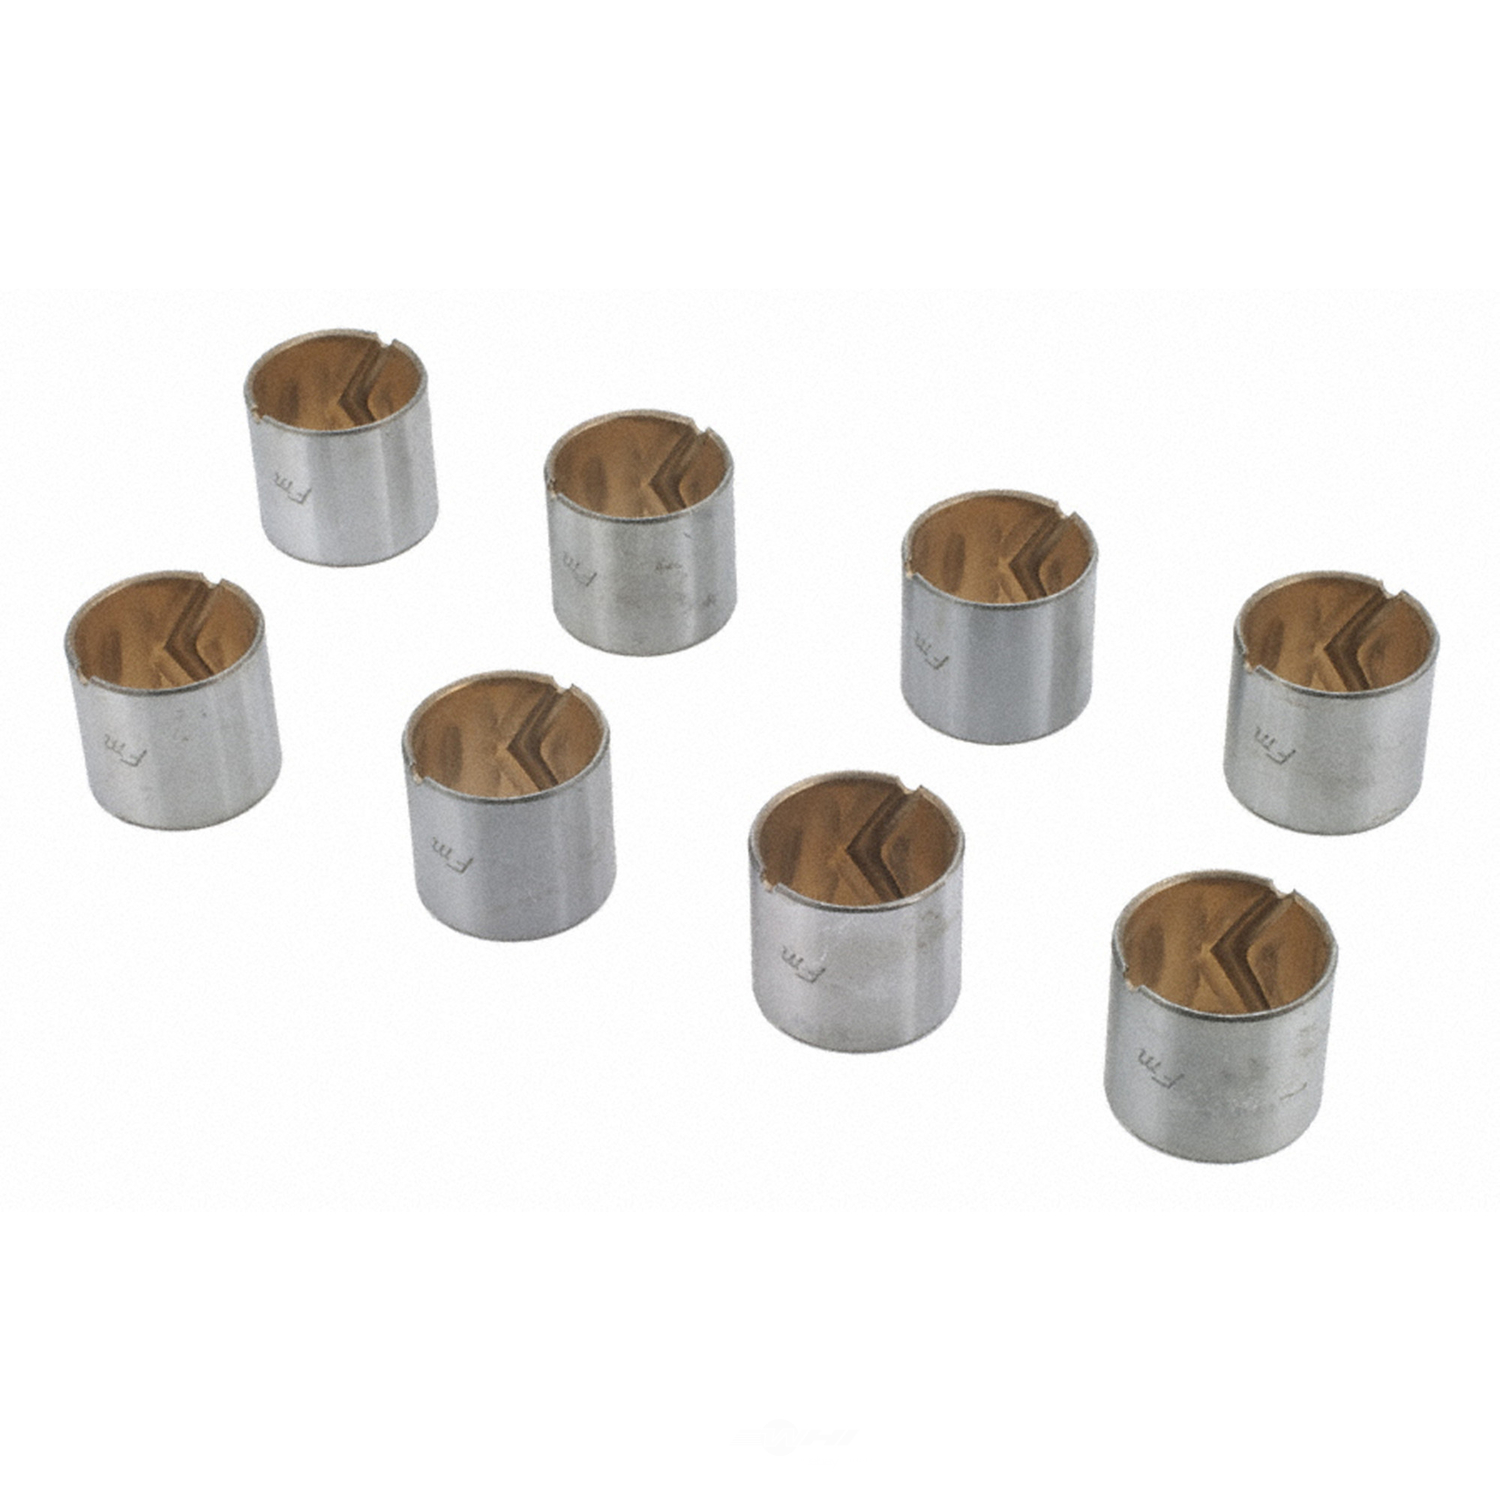 SEALED POWER - Engine Piston Pin Bushing - SEA 3199Y